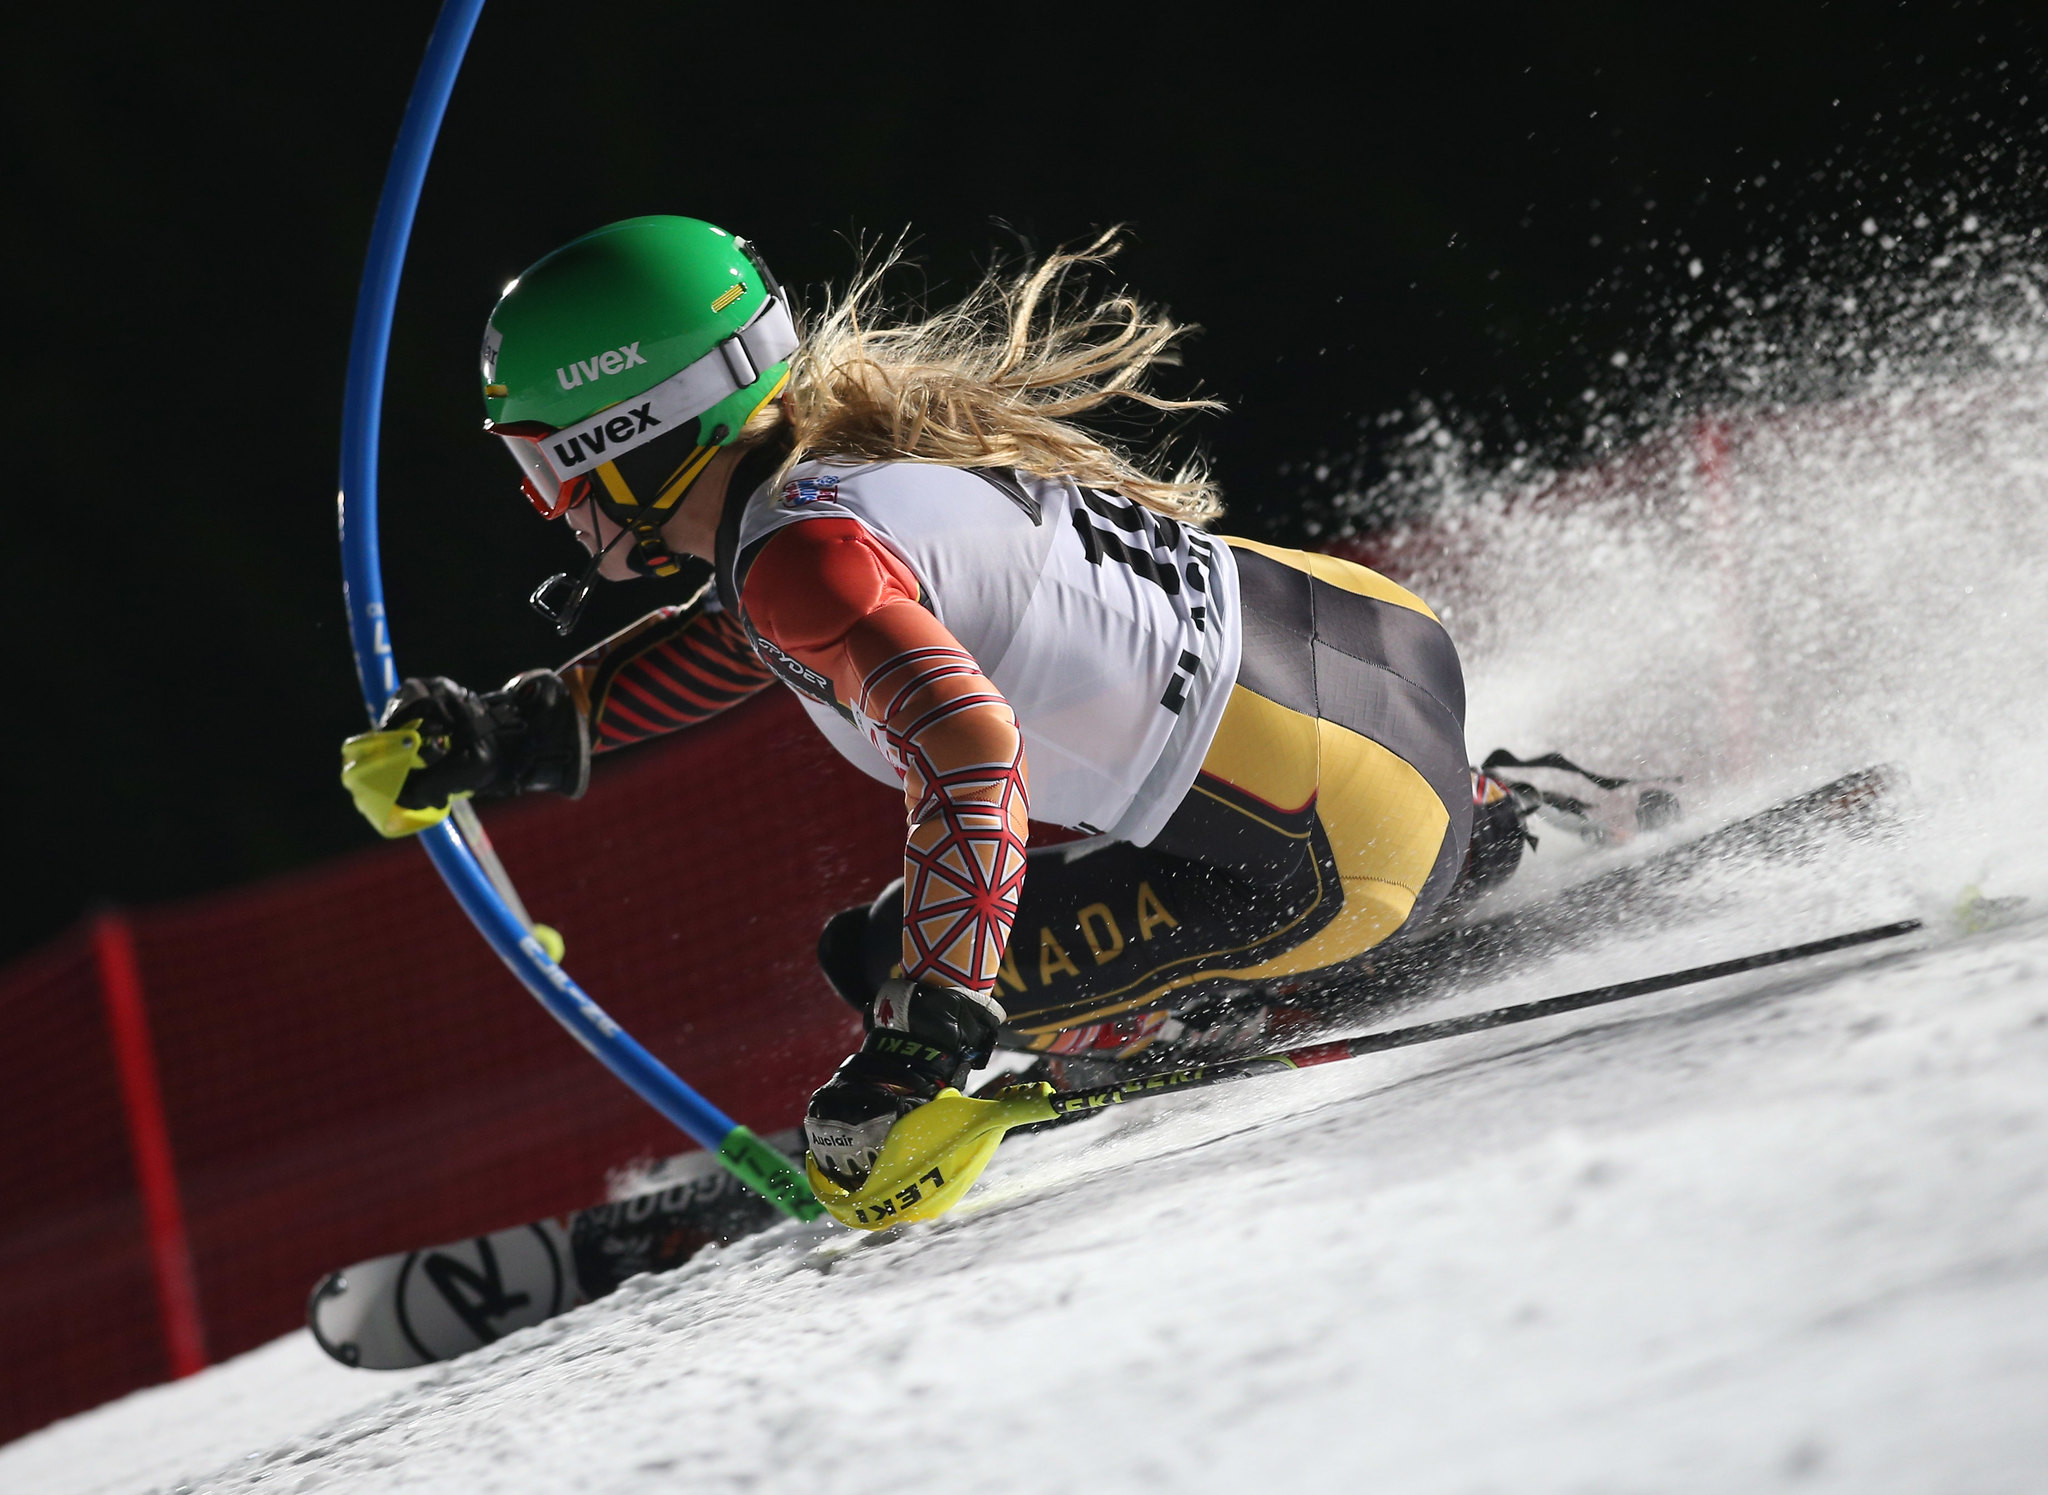 Mielzynski races her way to a 21st place finish in the slalom at the FIS Alpine World Cup in Flachau, AUT